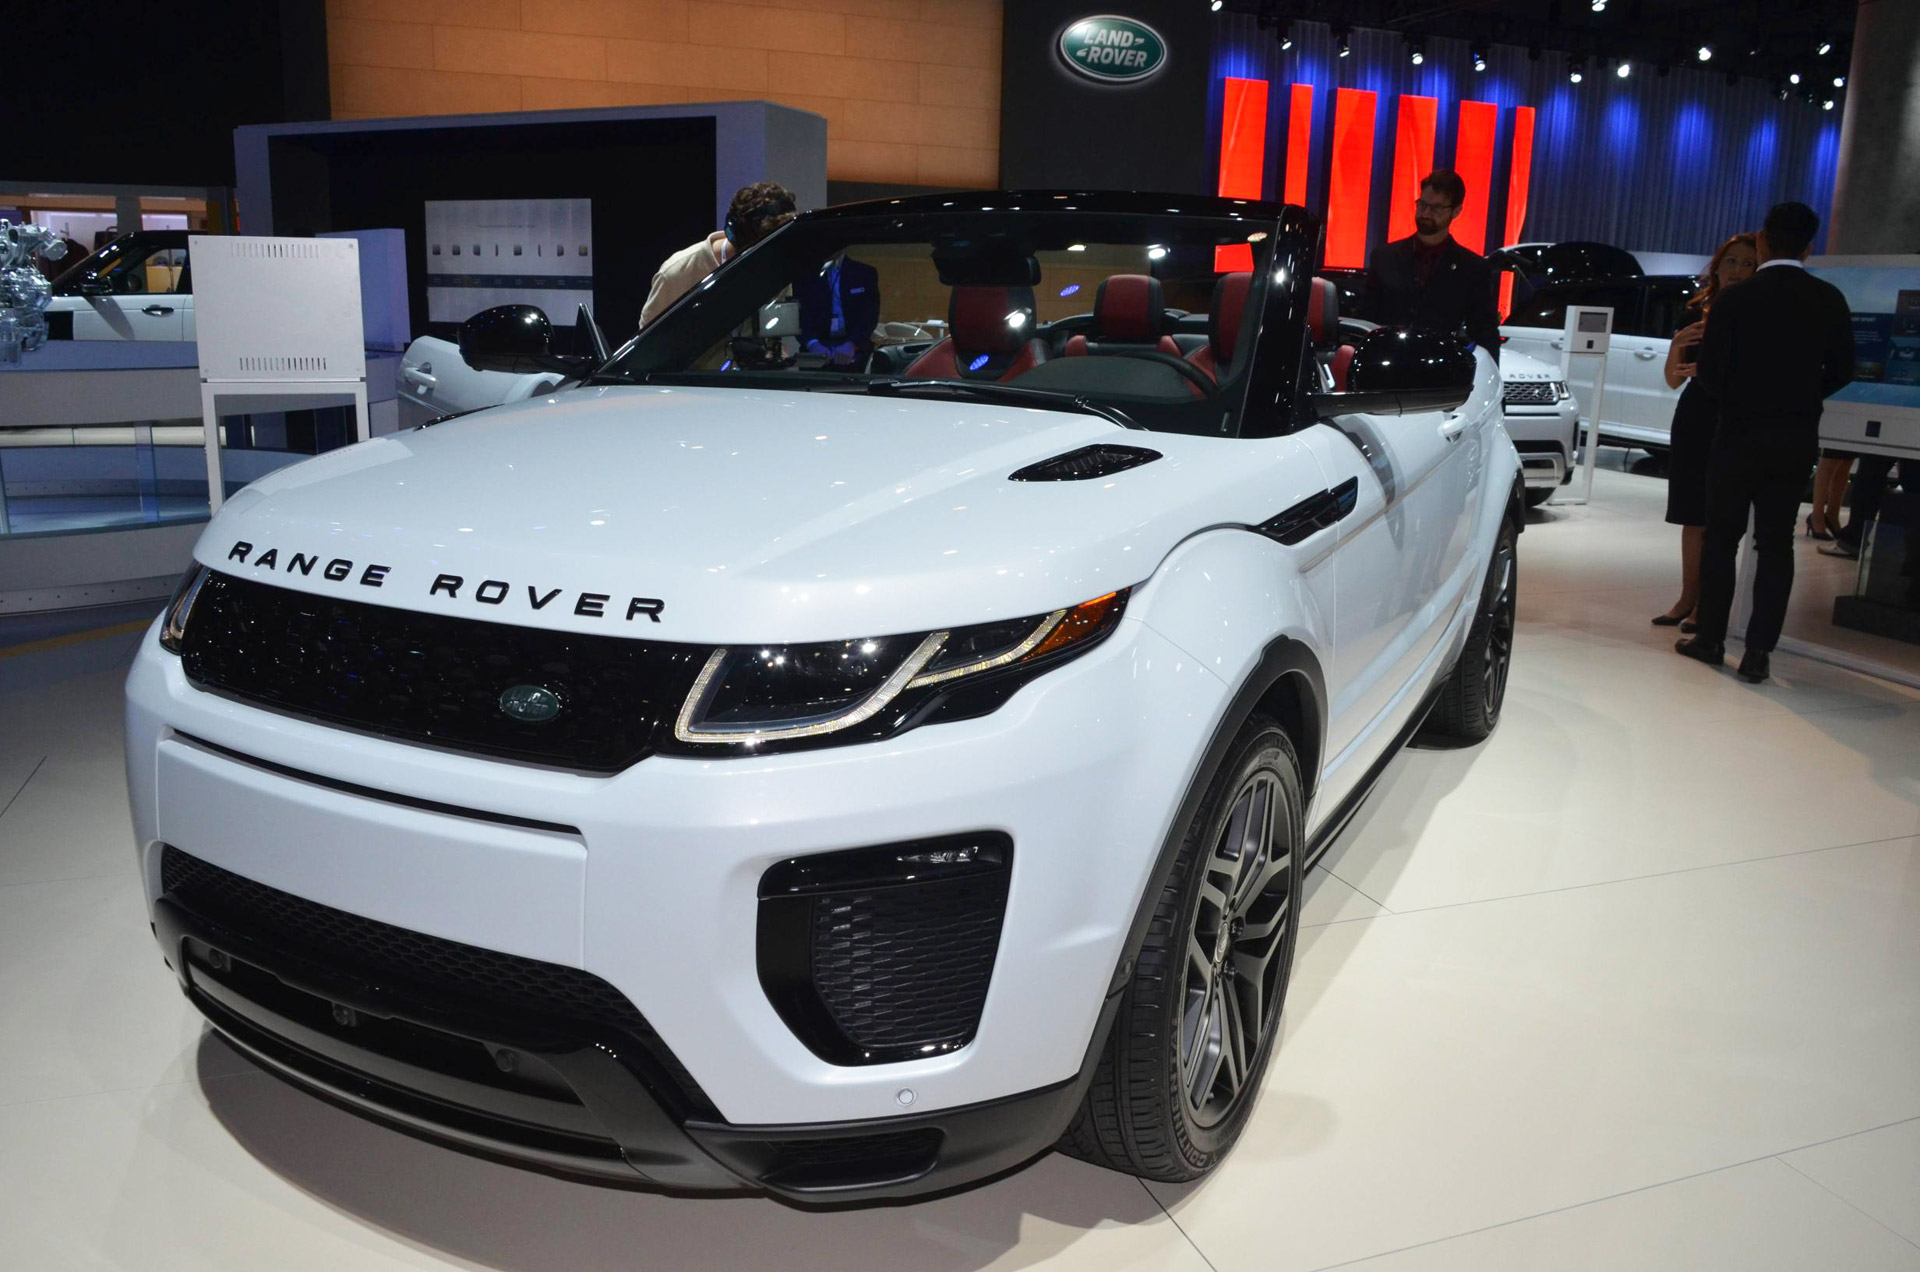 2017 land rover range rover evoque convertible video preview. Black Bedroom Furniture Sets. Home Design Ideas